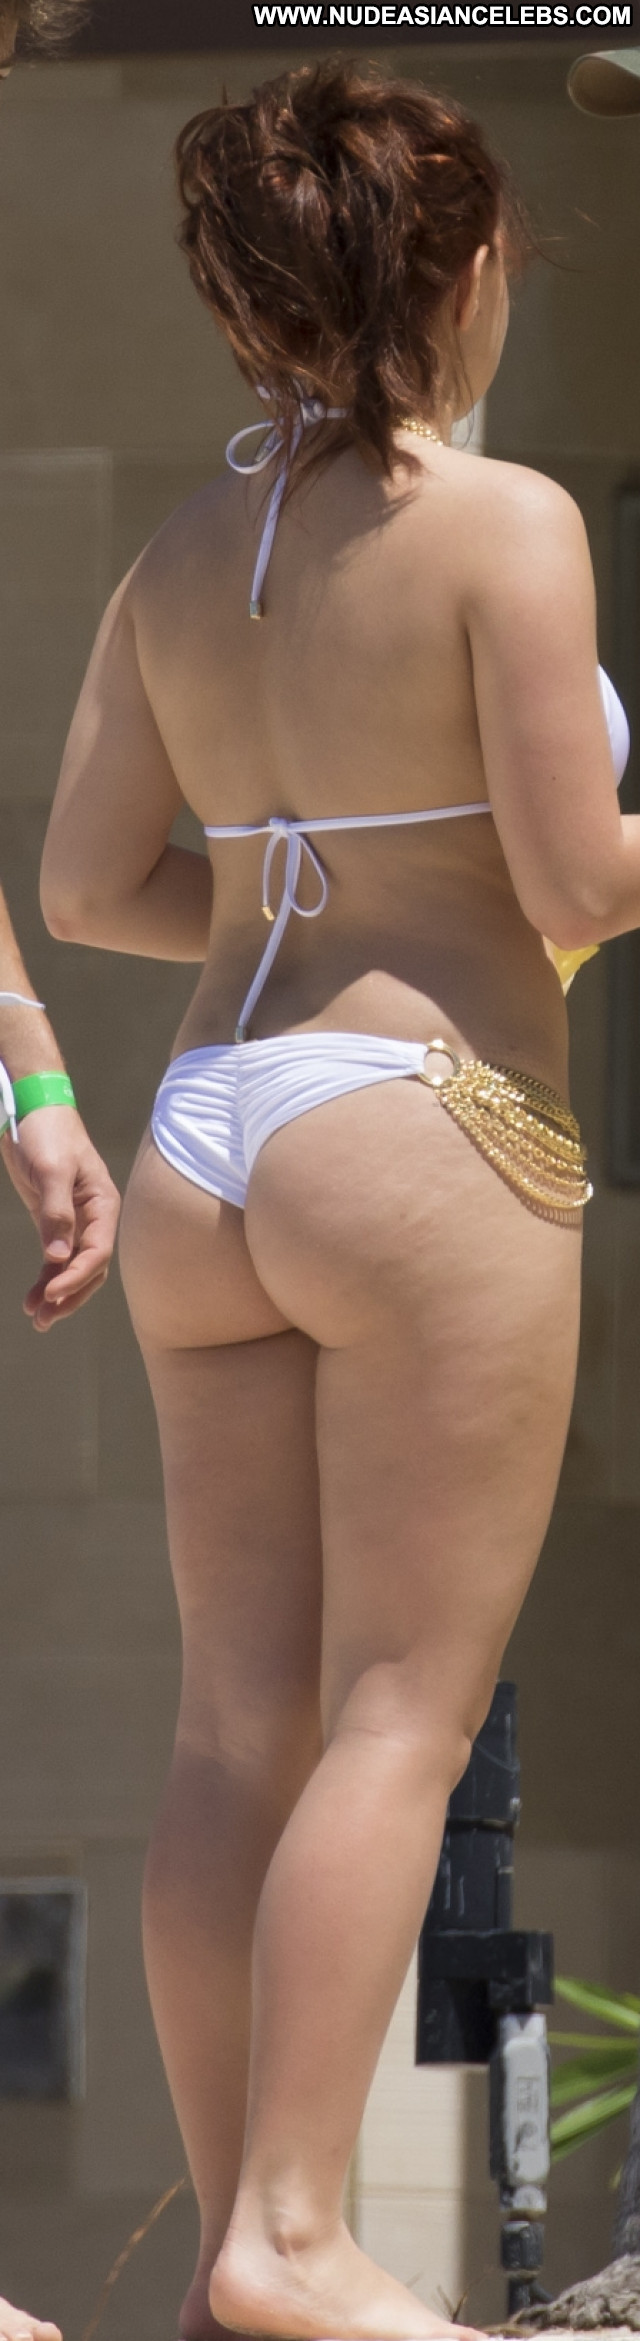 Ariel Winter No Source Ass Celebrity Babe Sexy Posing Hot Swimsuit